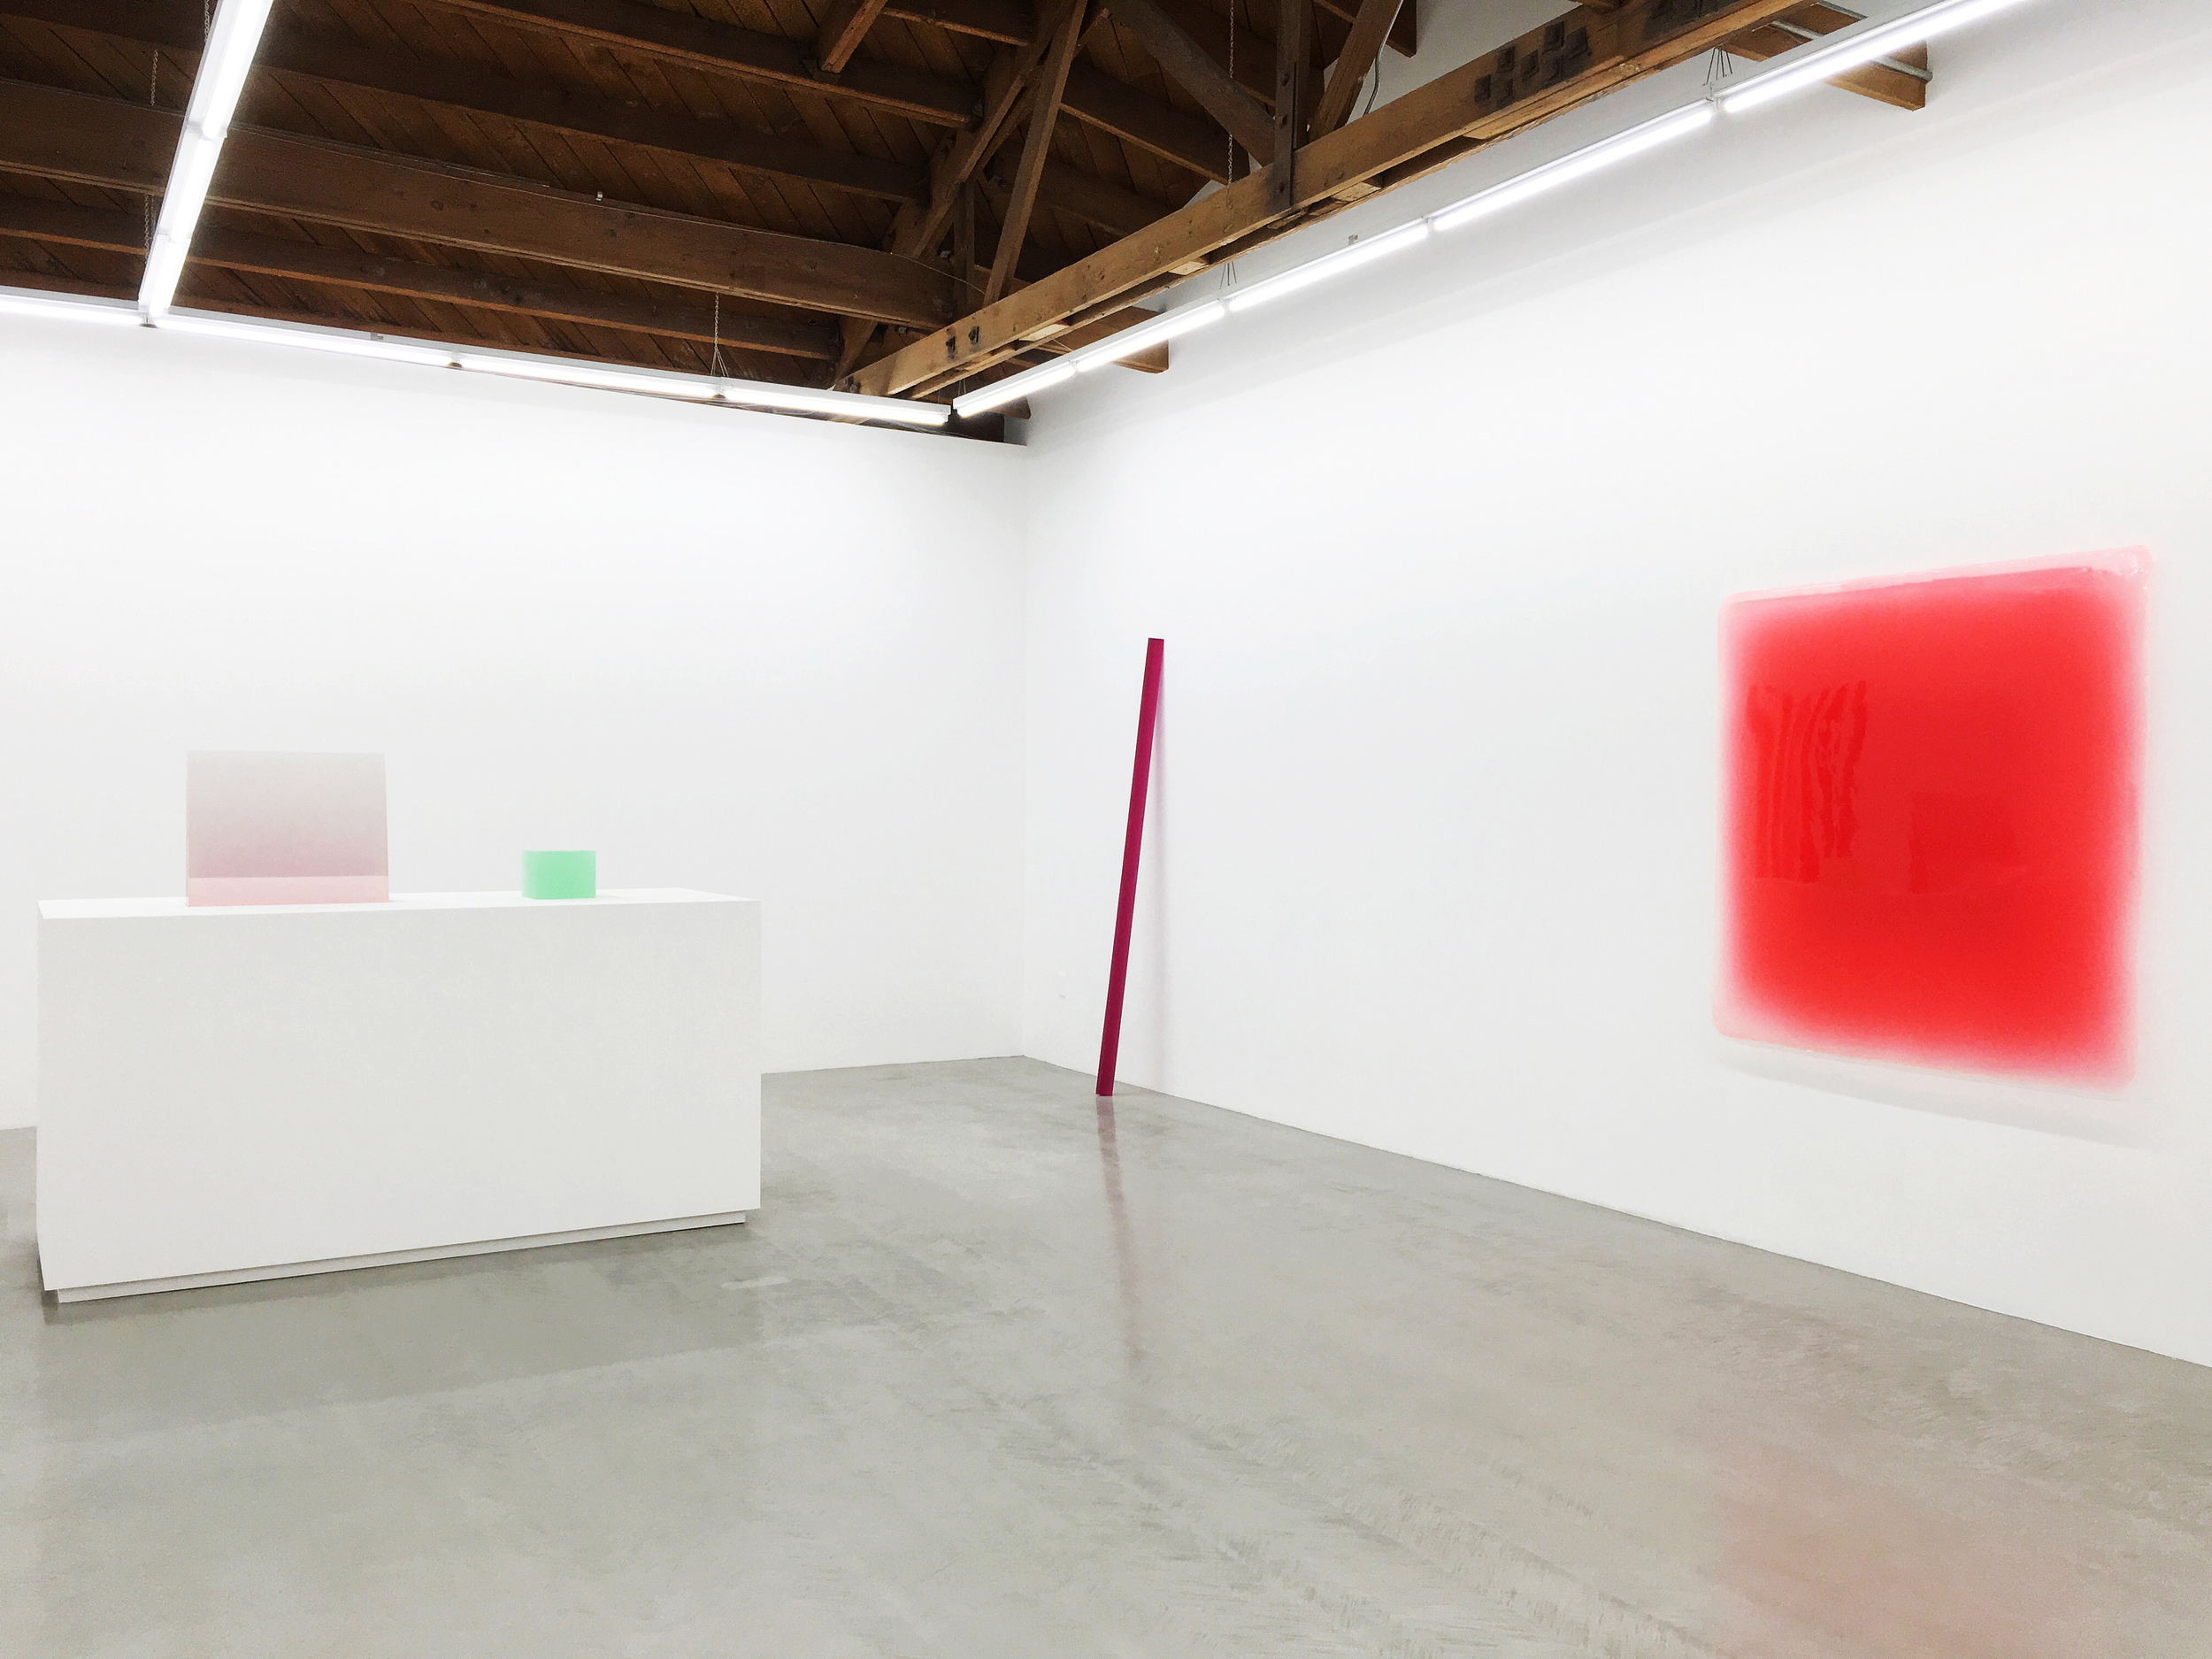 Selection of Peter Alexander's resin sculptures. Large pink translucent block, small translucent turquoise block. Tall thin red block leaning against wall. Wall mounted red resin square